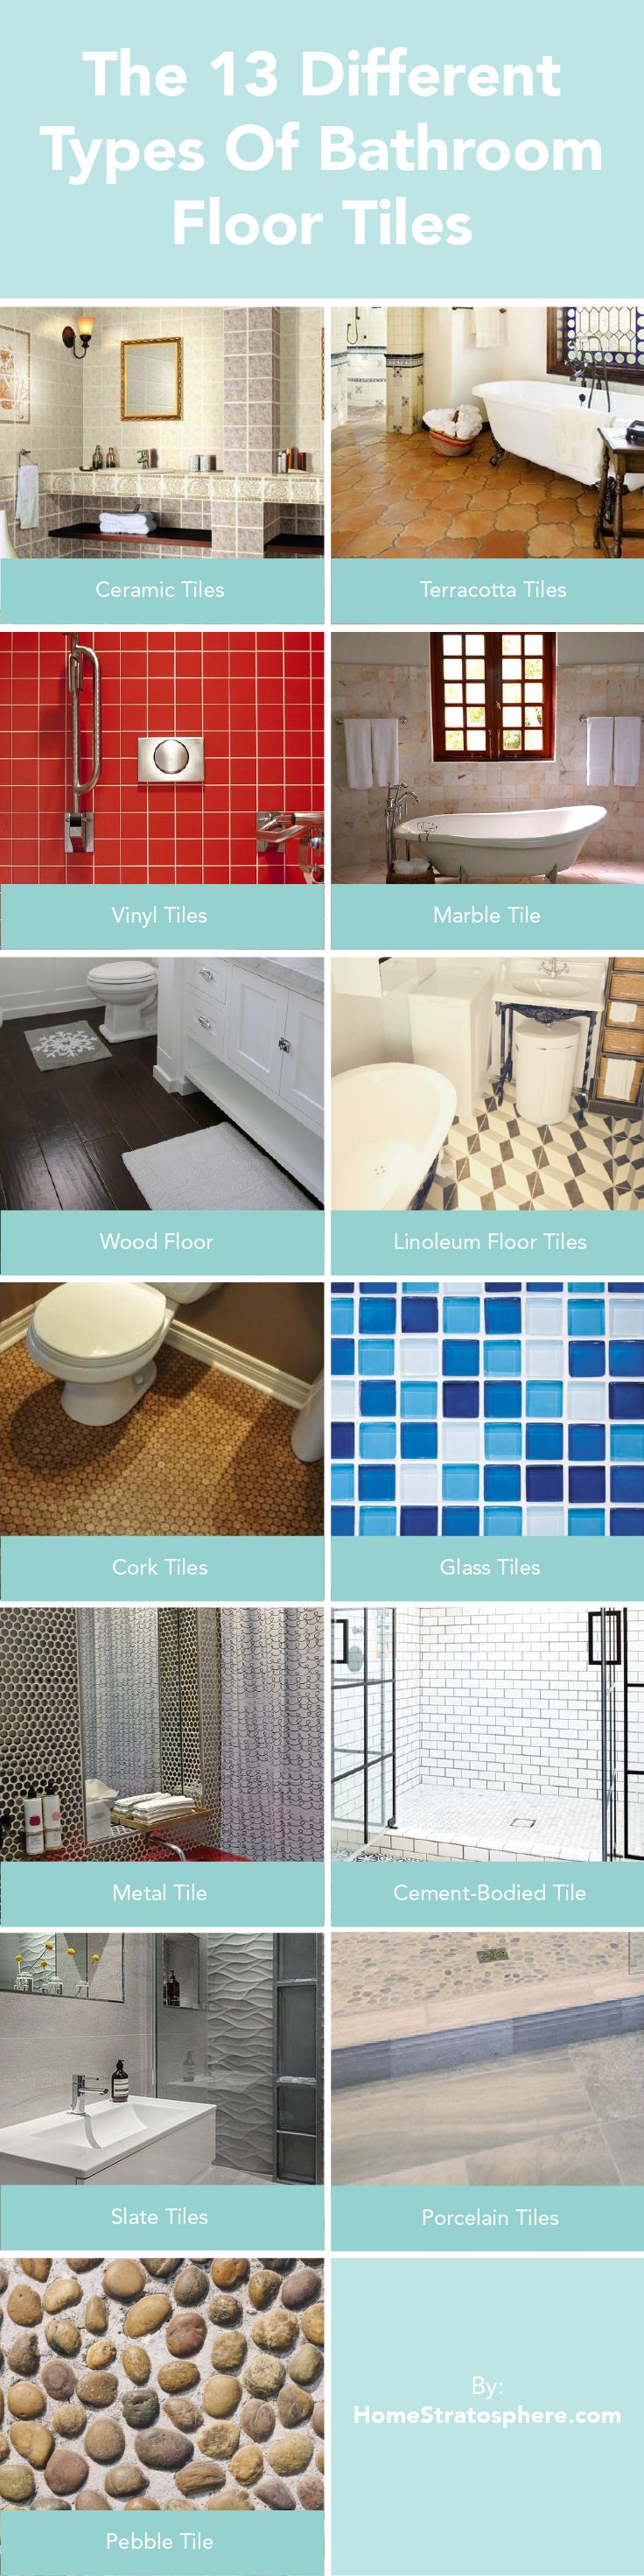 1524 best bathroom ideas images on pinterest bathroom ideas the 13 different types of bathroom floor tiles pros and cons dailygadgetfo Image collections